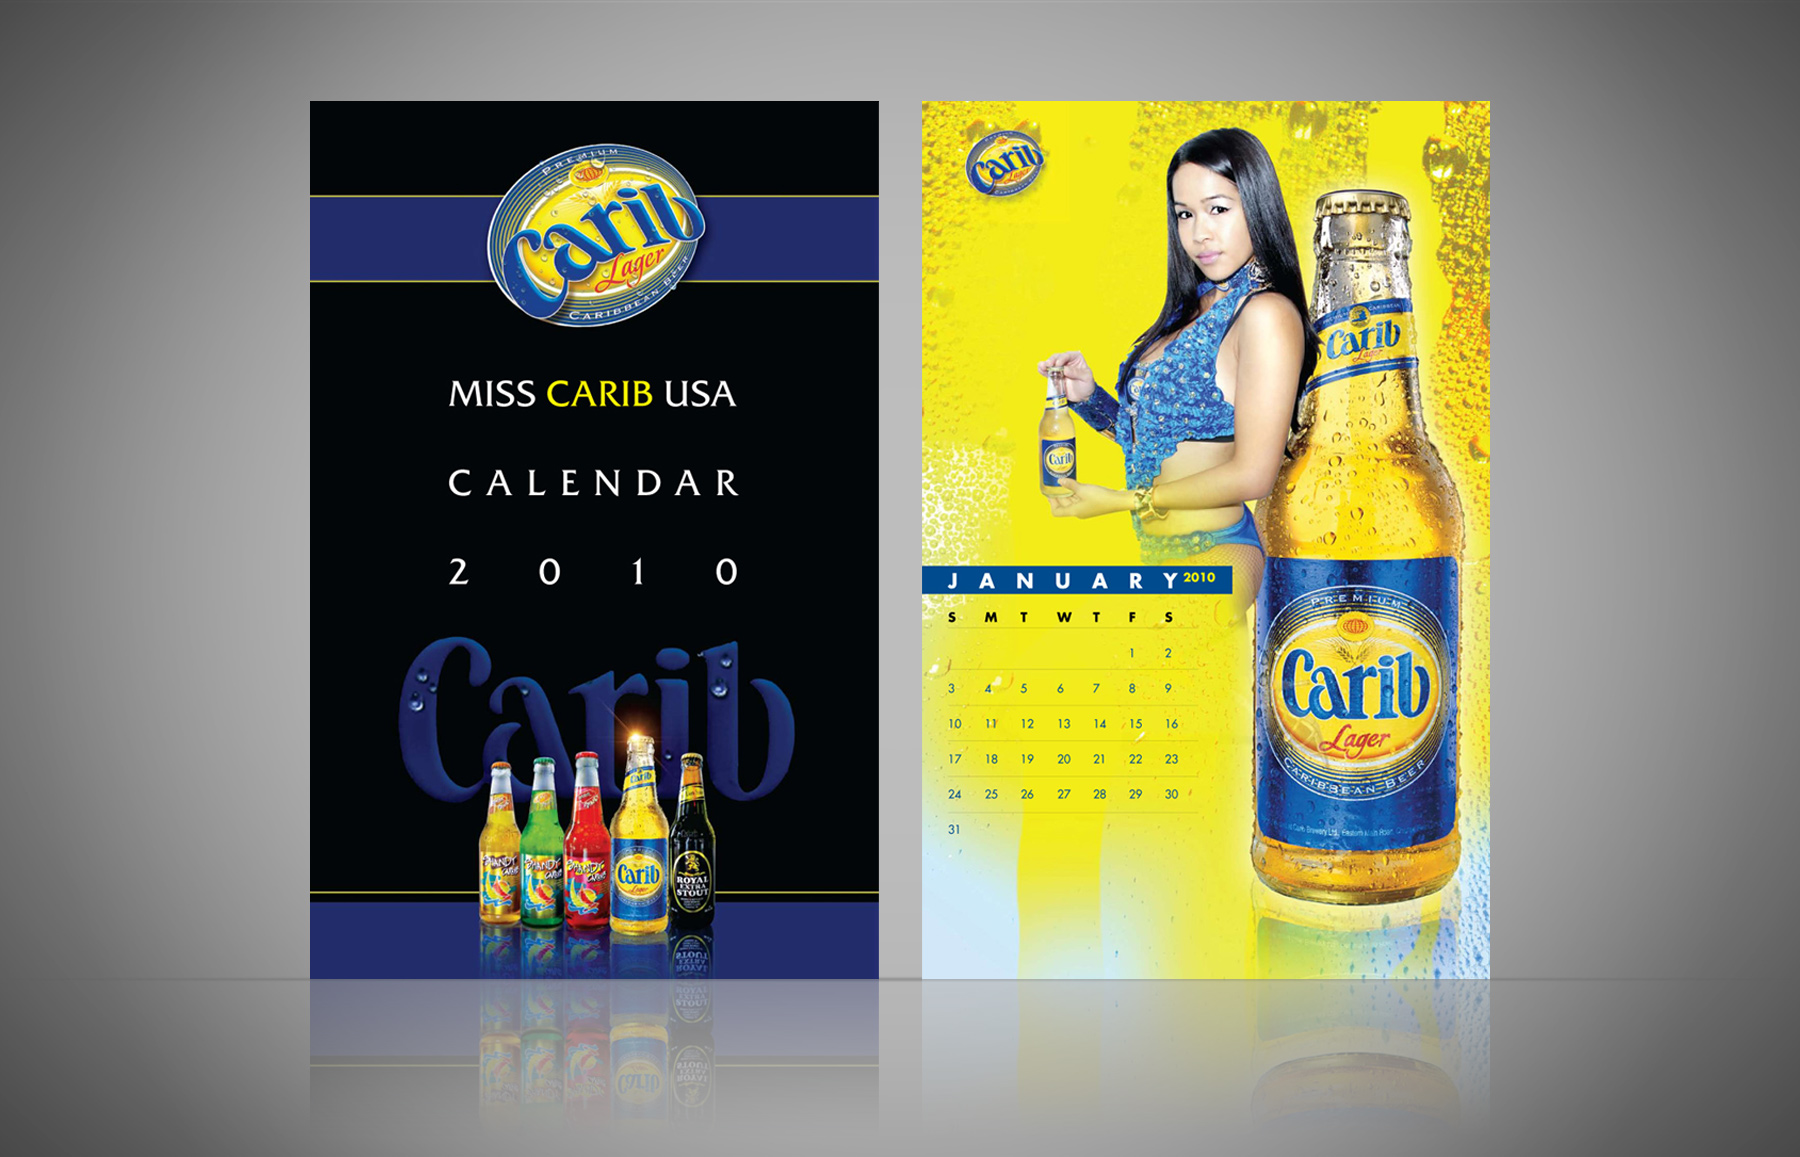 Miss Carib Beer USA Calendar